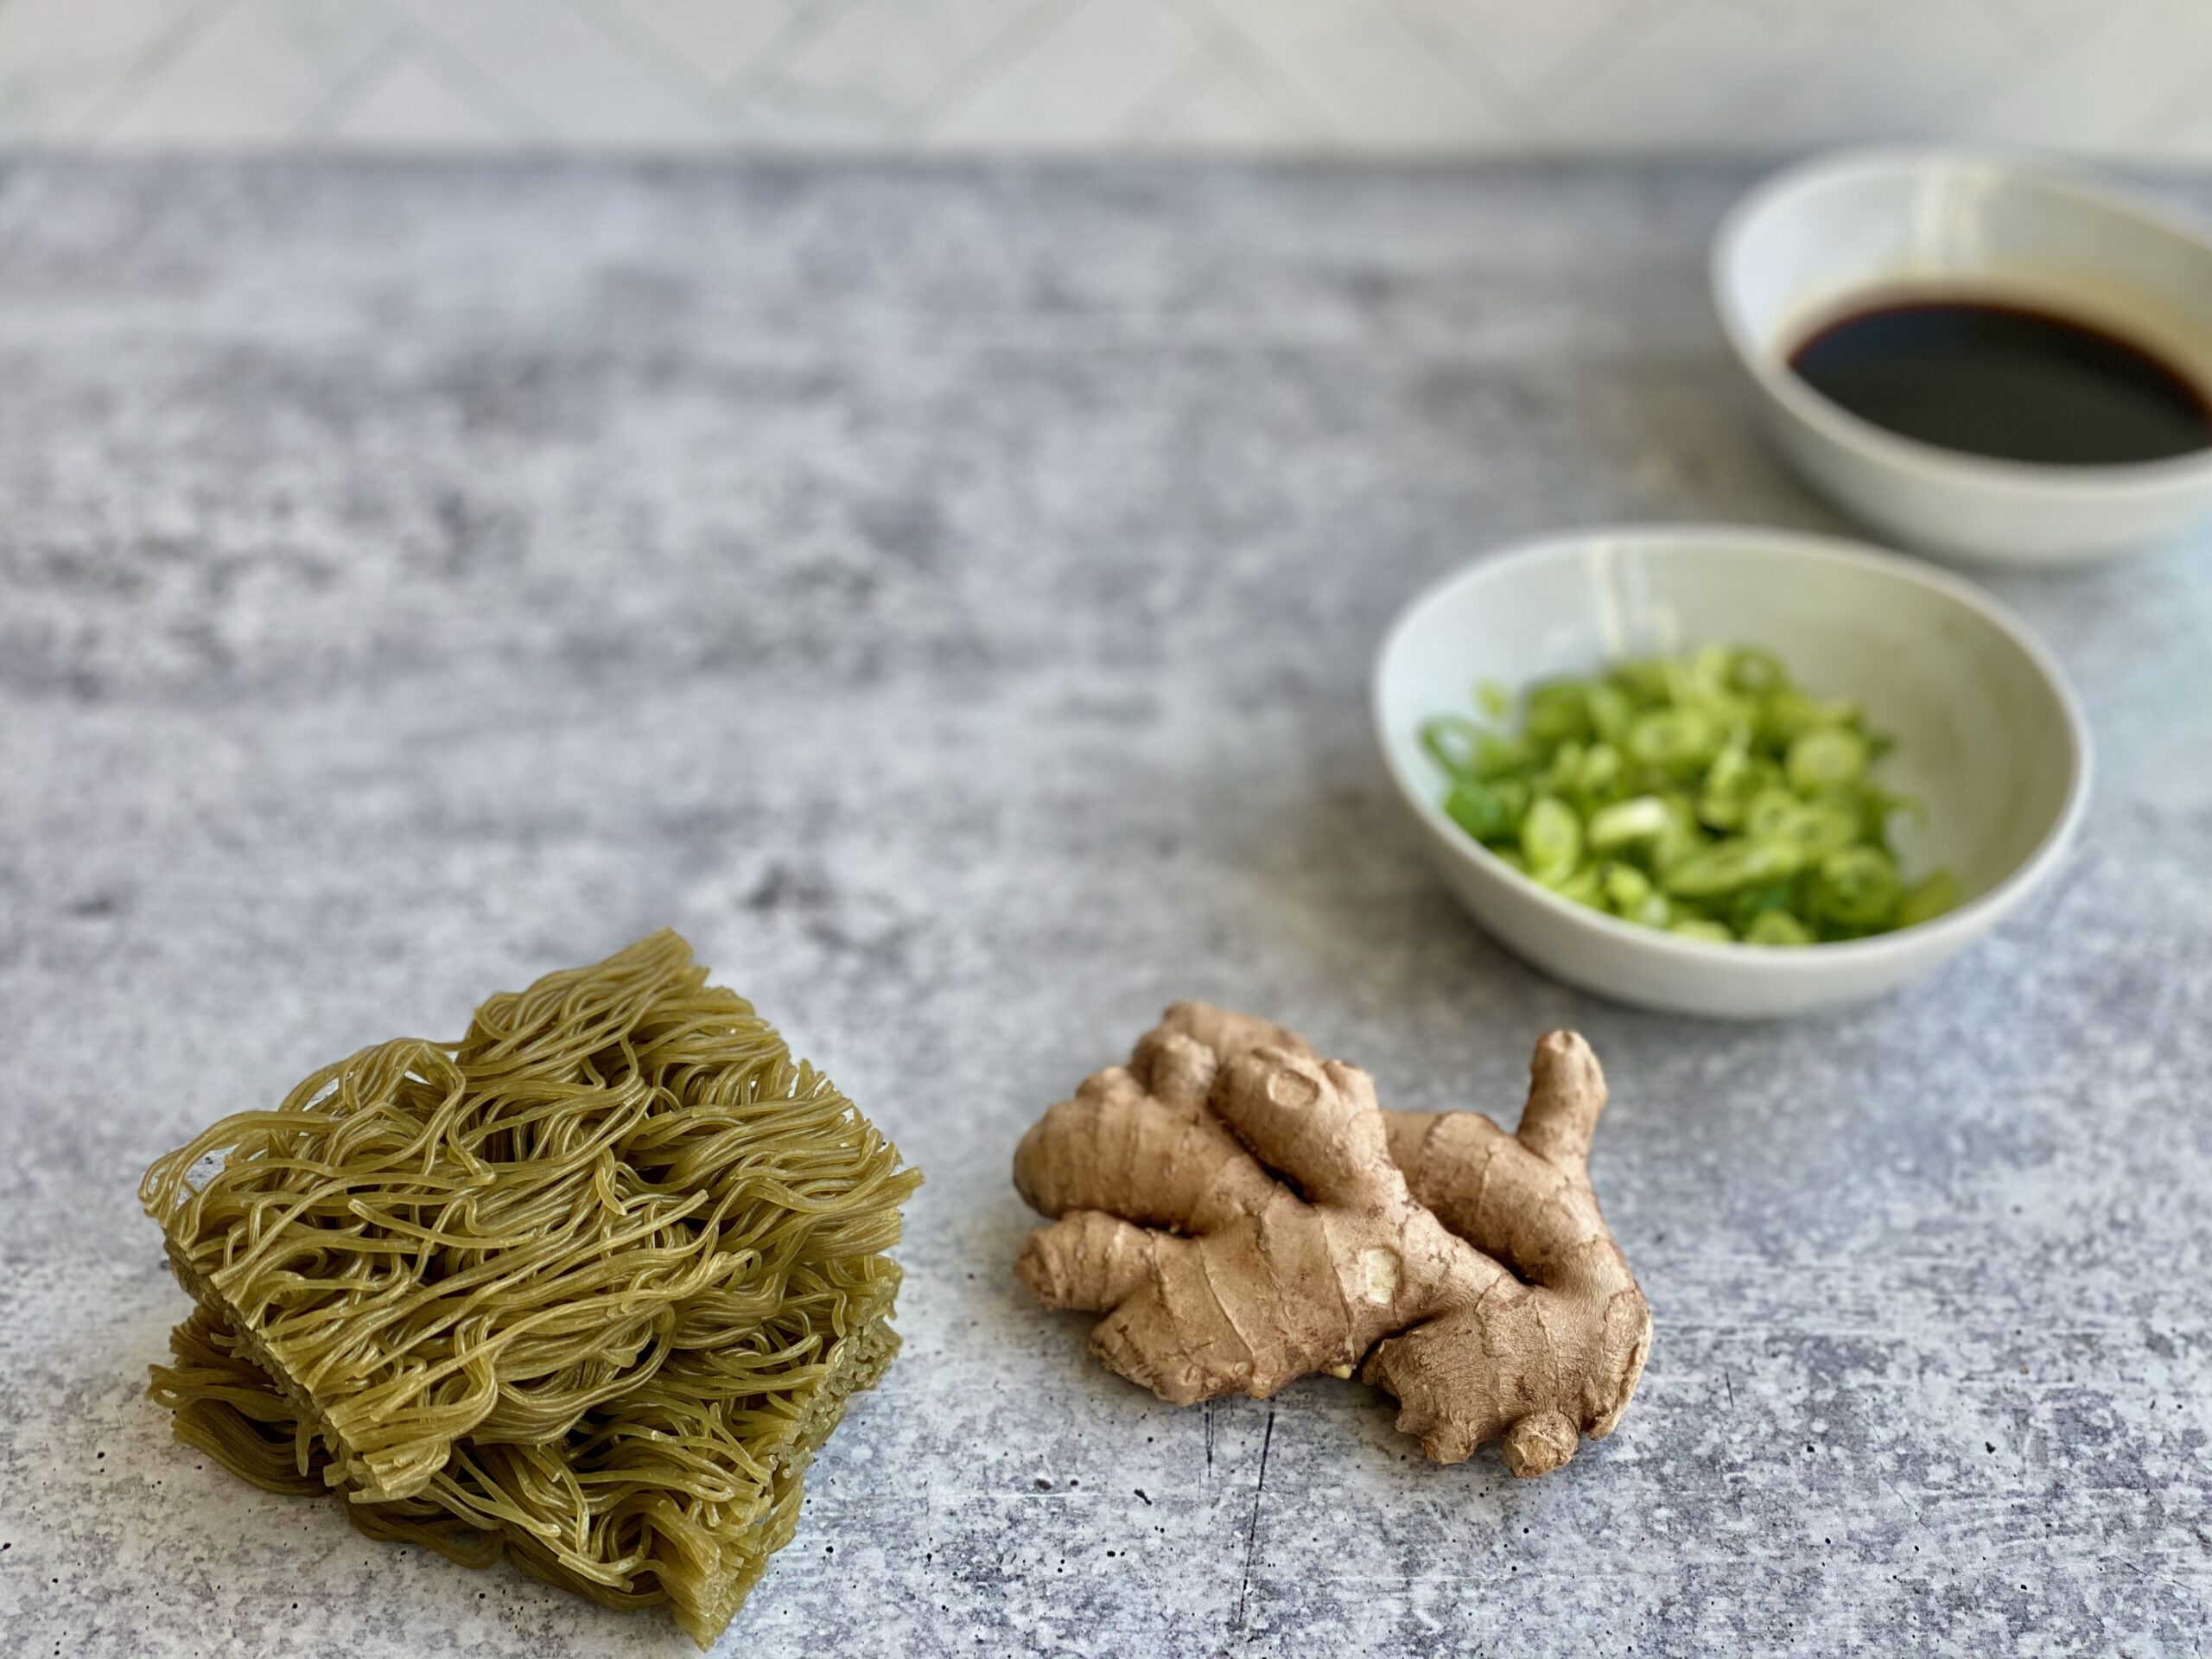 Image of ingredients to make ramen noodles including ginger, scallions and soy sauce.